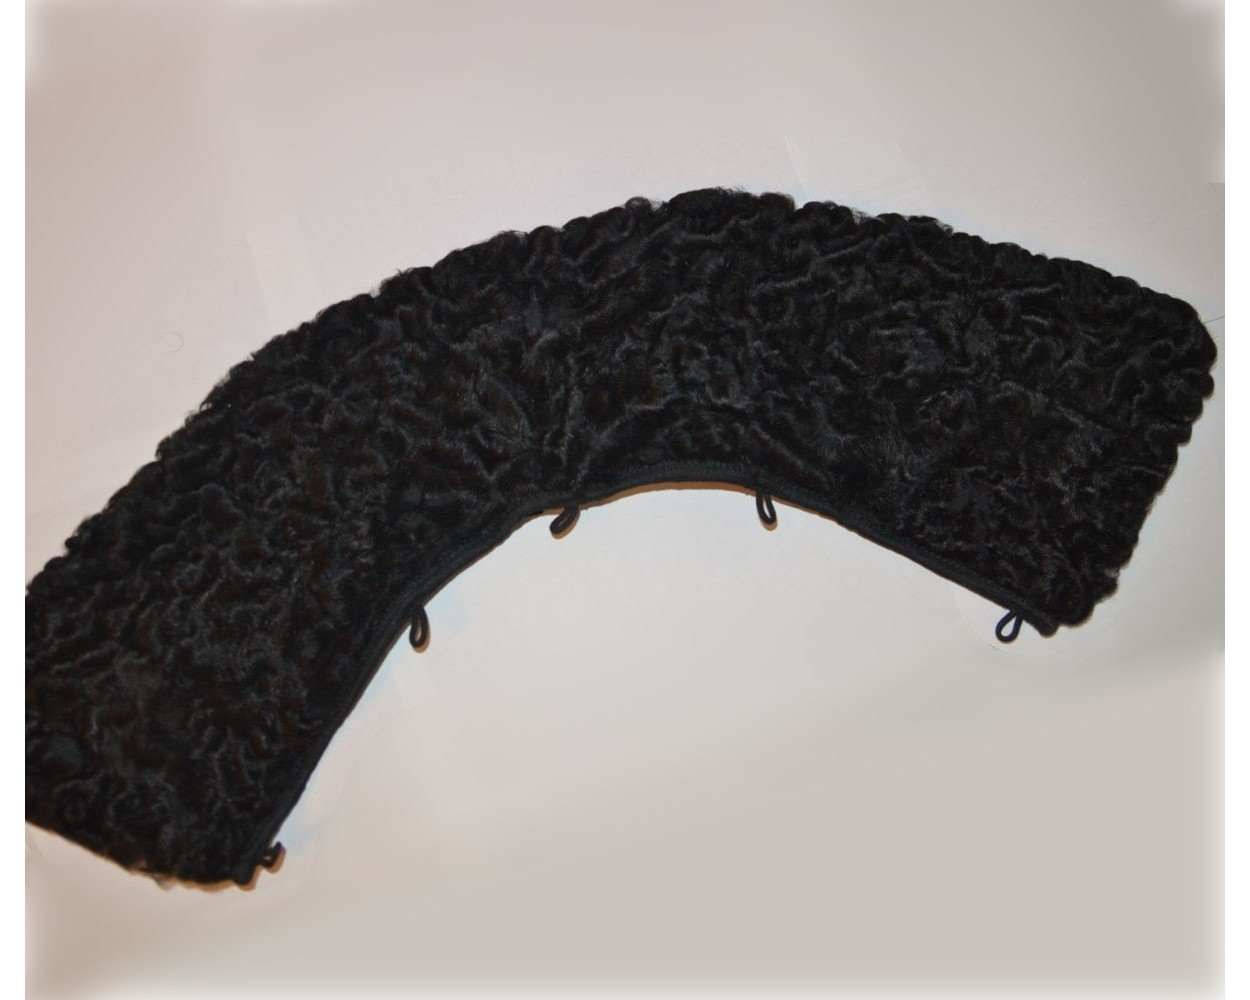 Collar_karakul_black_1_1-1250x1000.jpg